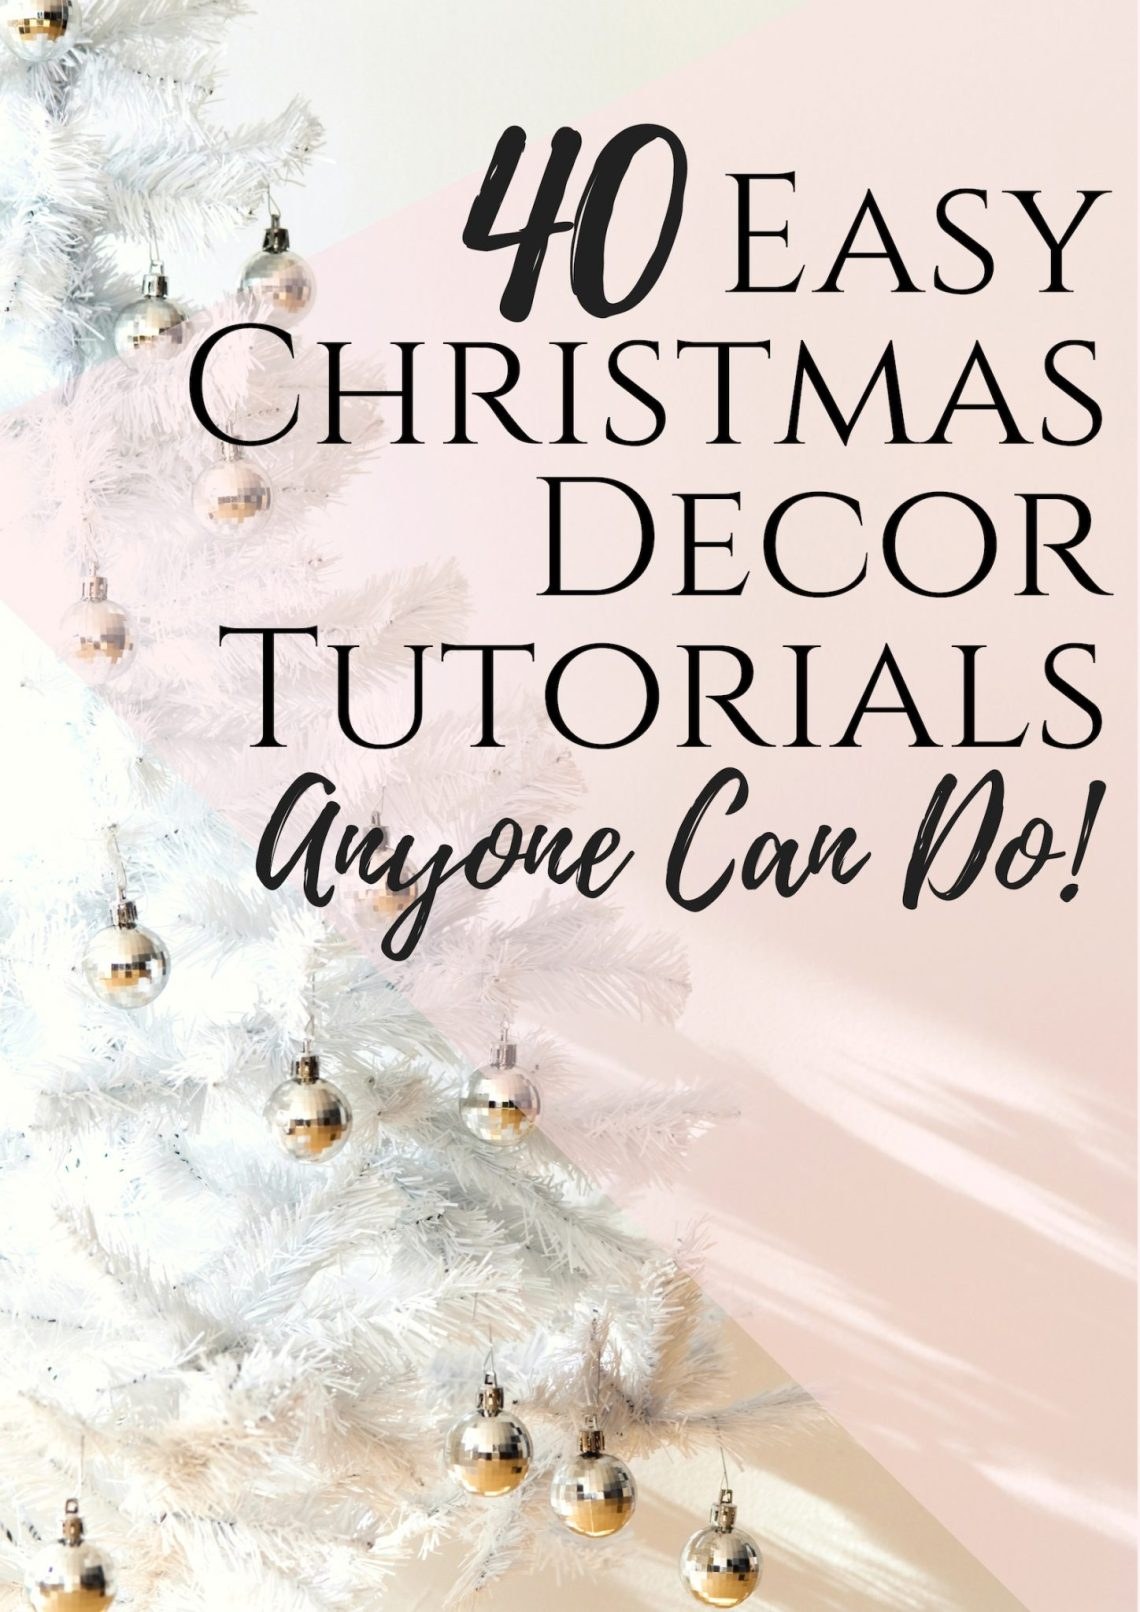 40 easy Christmas home decor tutorials anyone can do